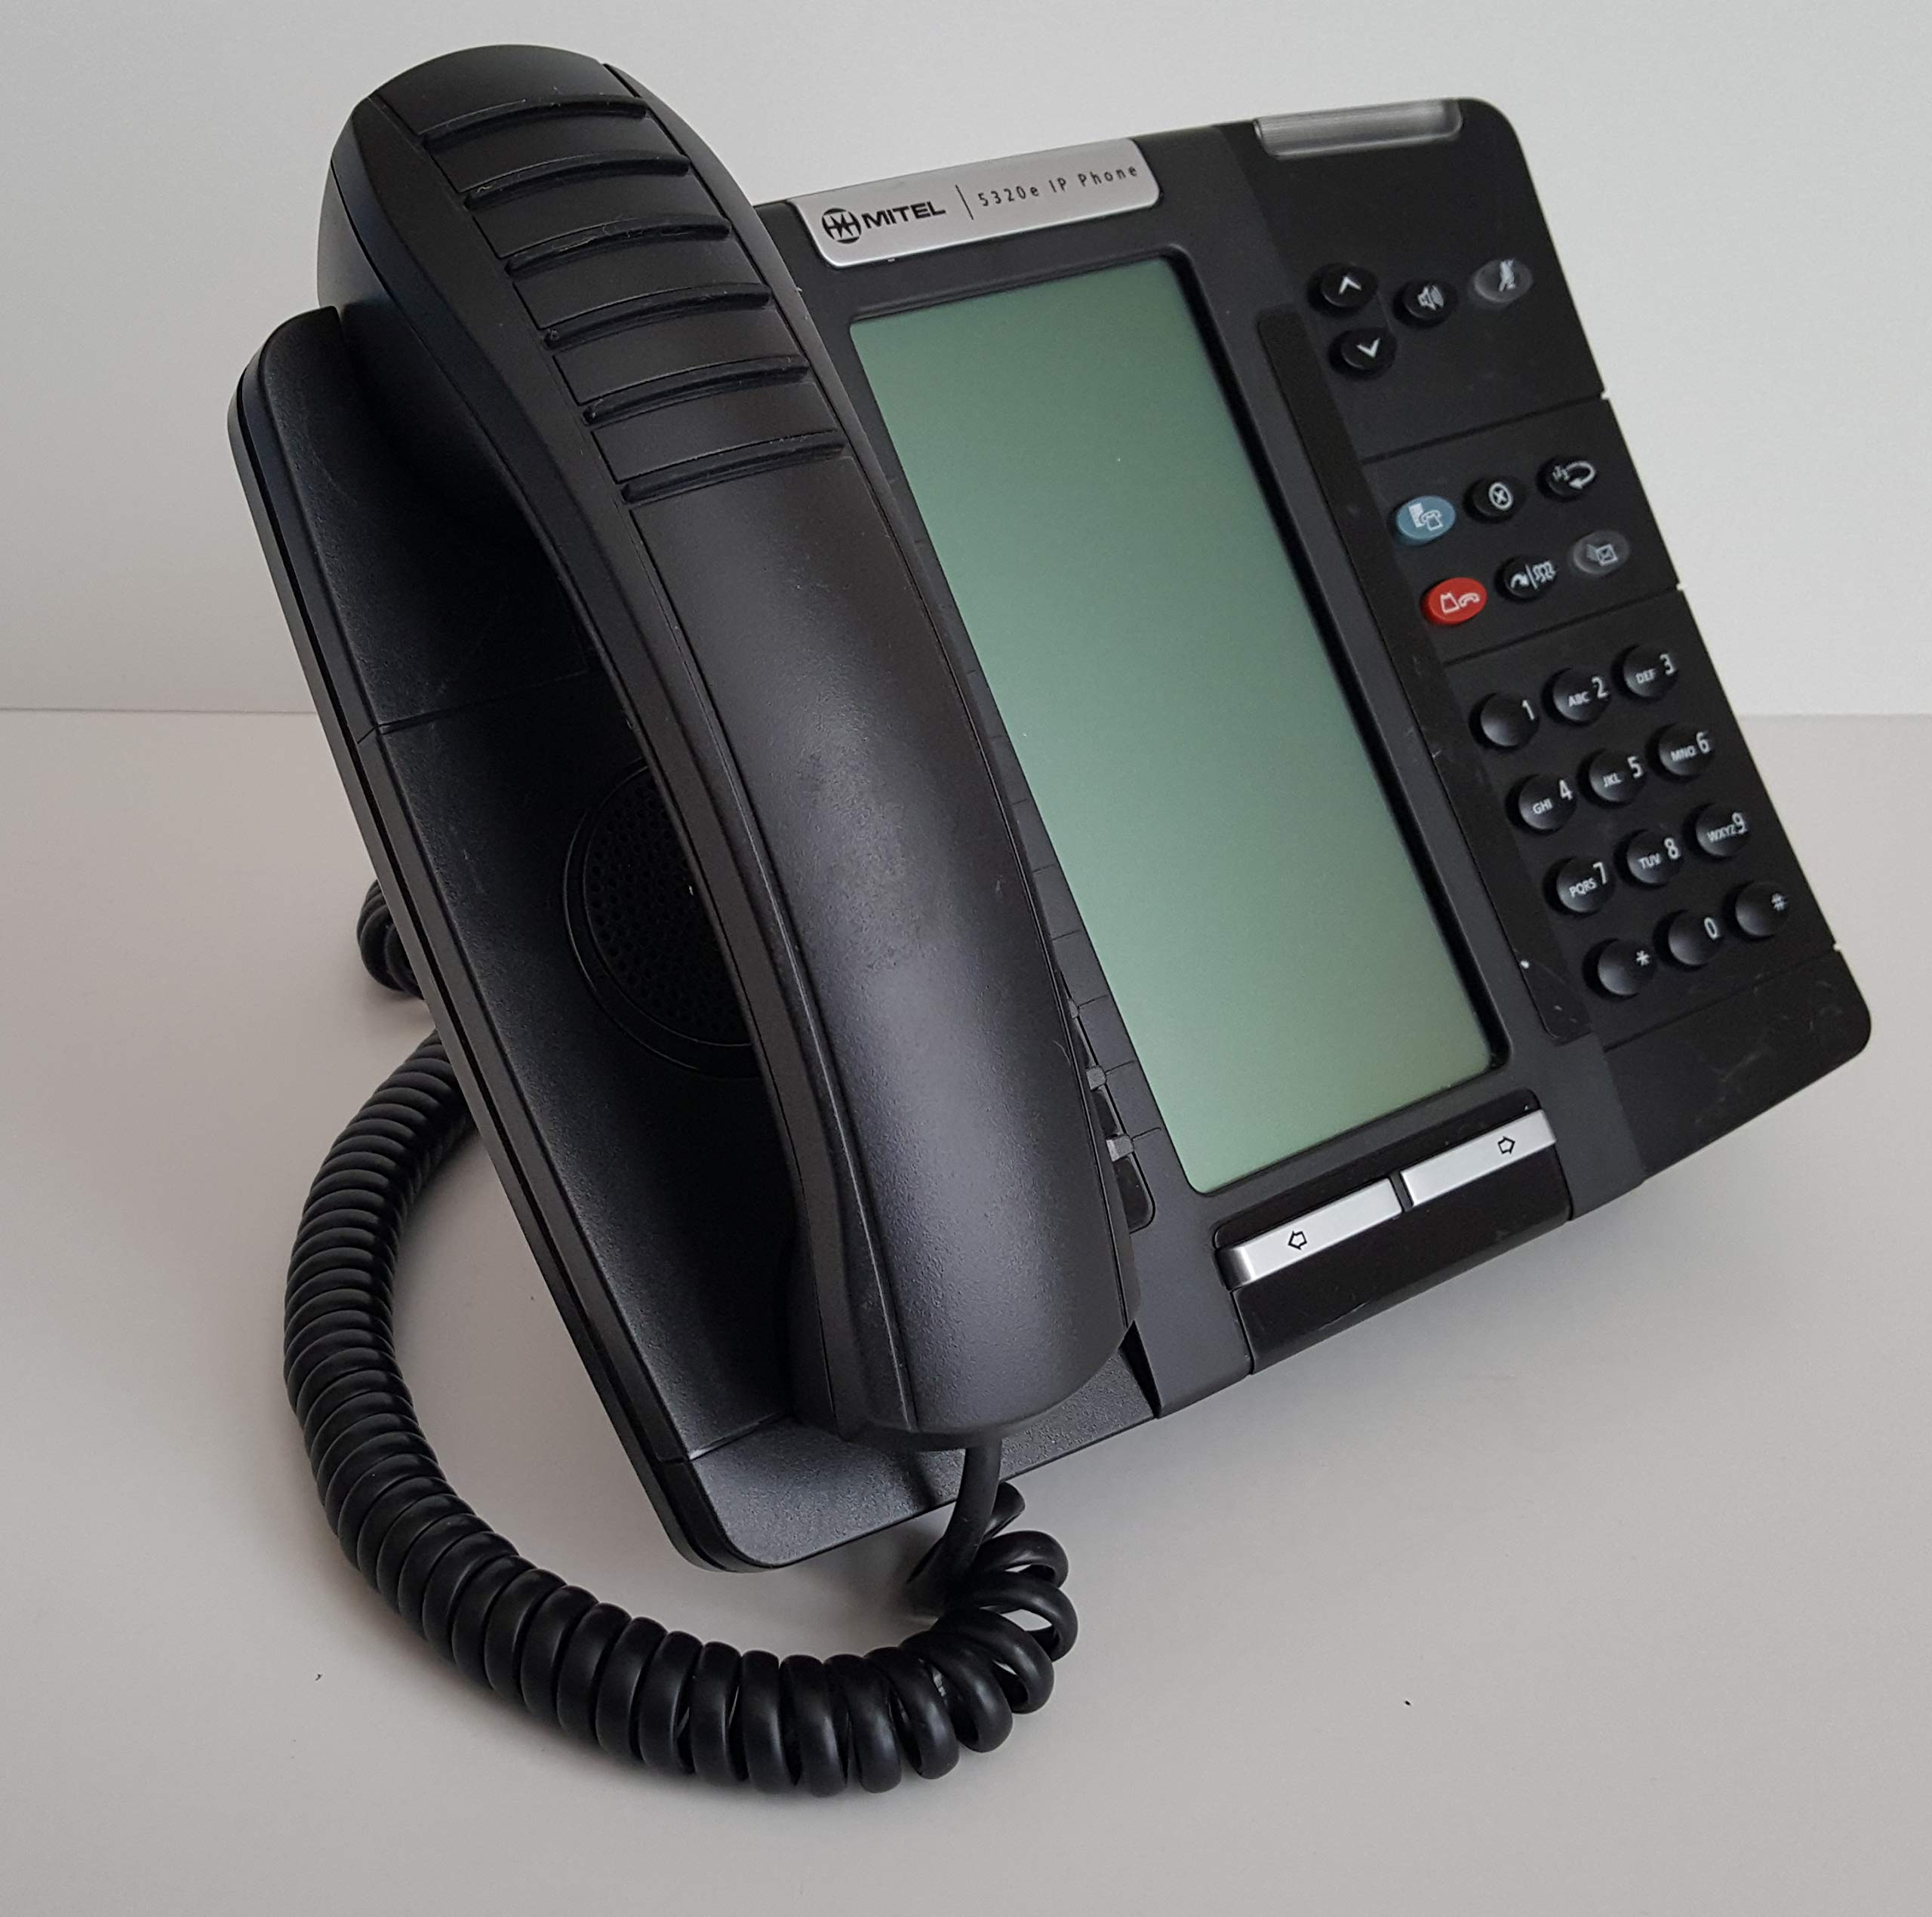 Mitel 5320e IP Display Phones 50006474 - Large Graphics Display - with Handset Cord & Base (Renewed) by Mitel 5320e